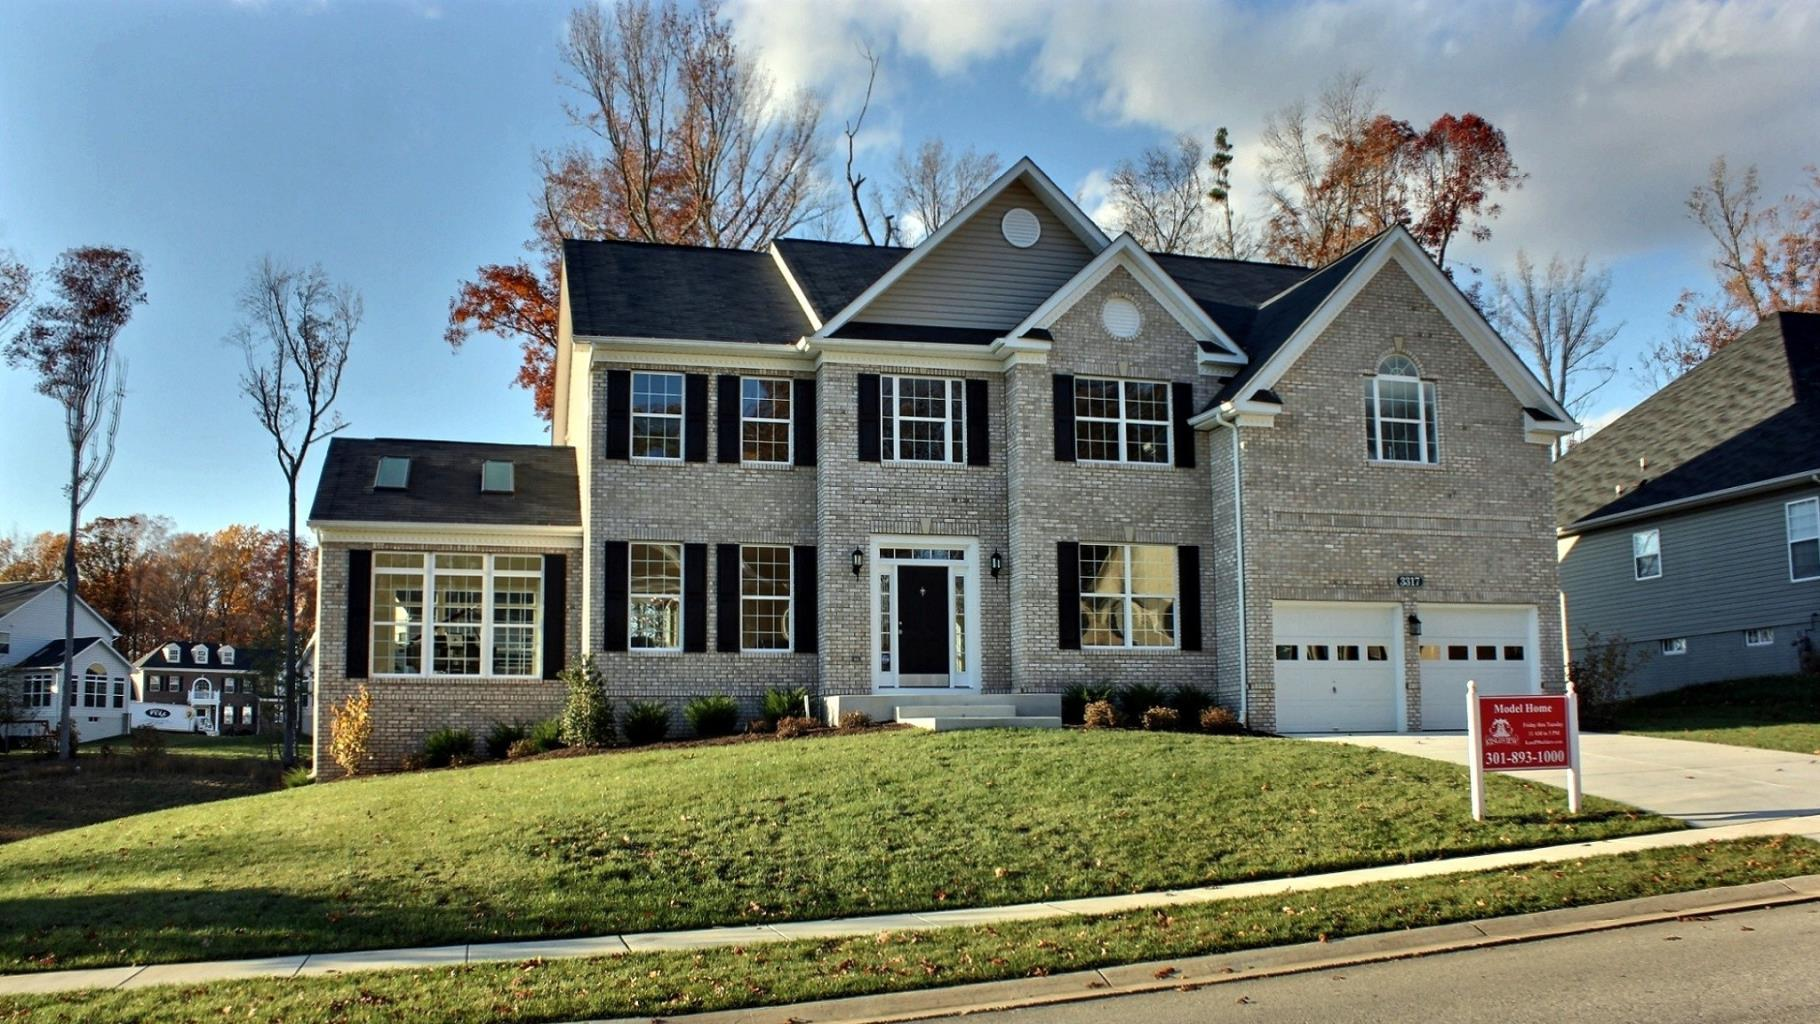 Beautiful White Plains MD Home for Sale at 3317 Baron Street - Listed by Marie Lally, your Southern Maryland Realtor serving Charles County!